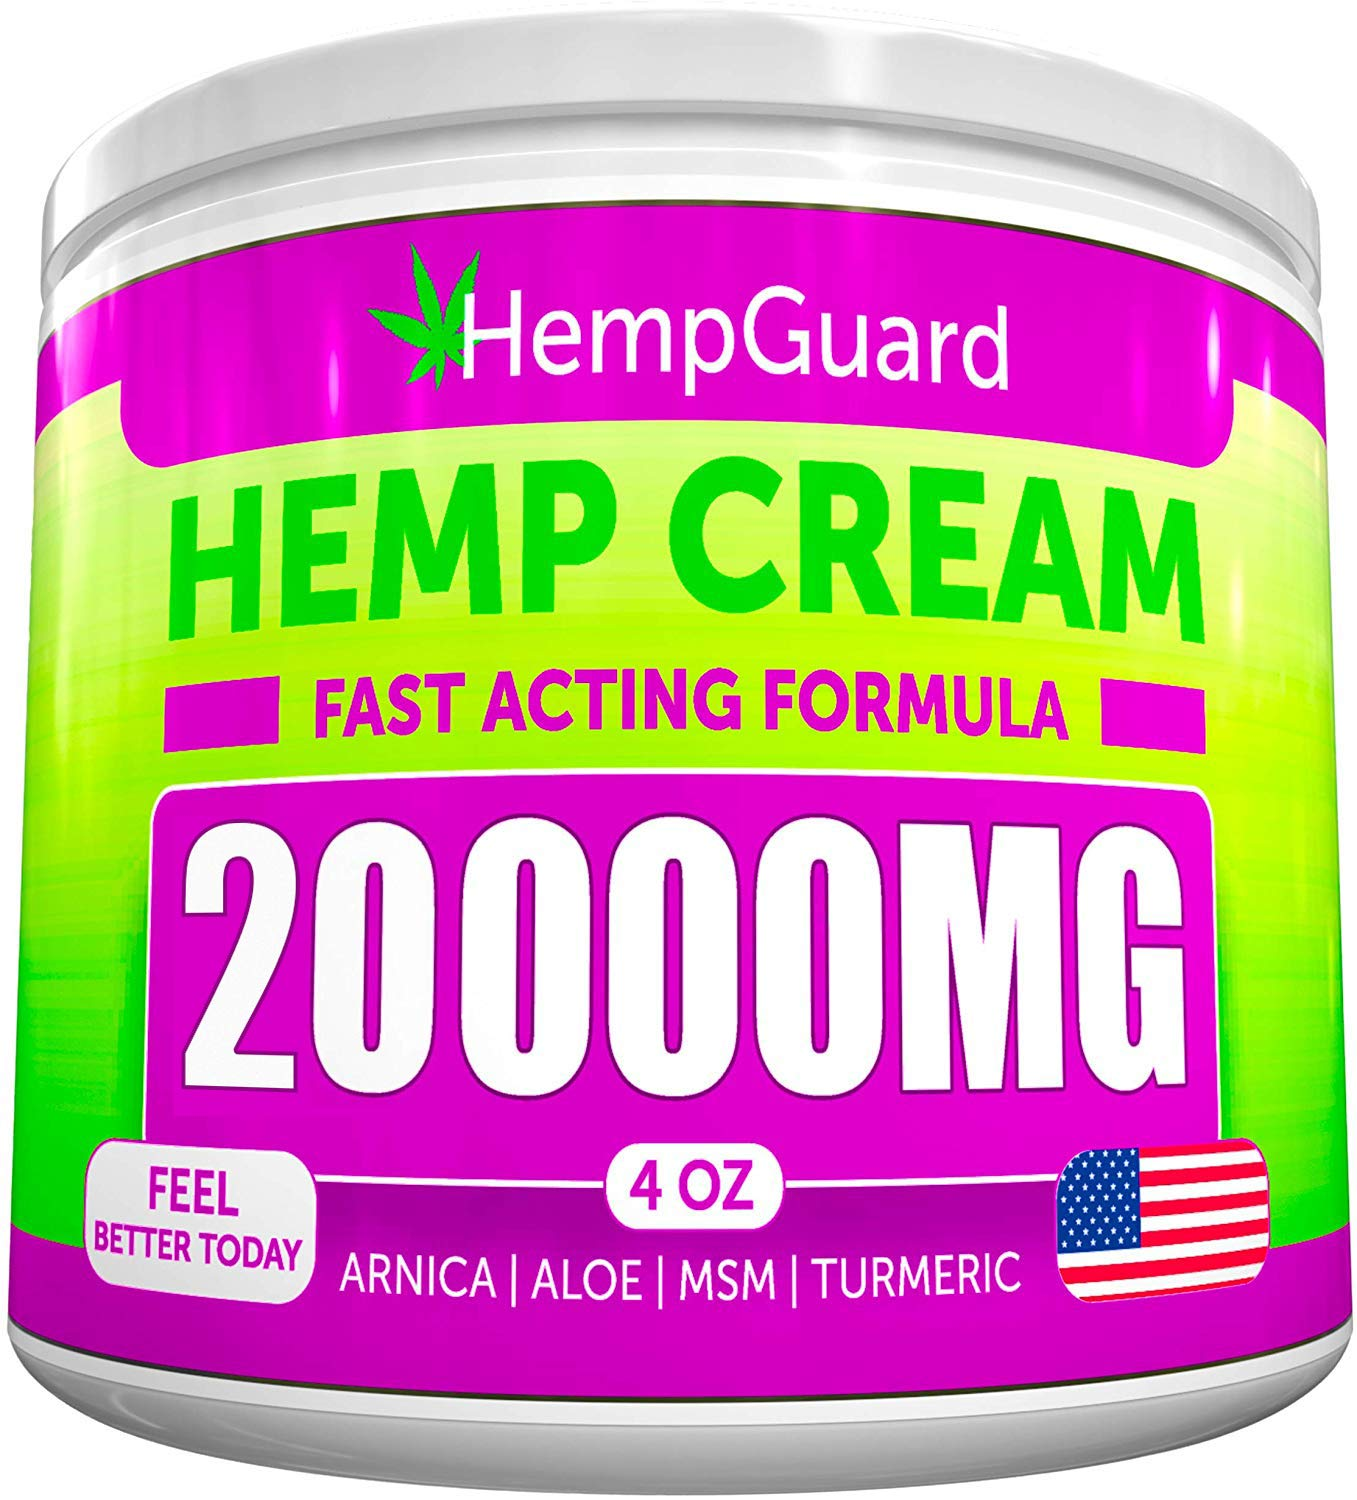 Hemp Pain Relief Cream - 20 000 MG - Made in USA - 4OZ - Relieves Muscle, Joint Pain - Lower Back Pain - Inflammation - Hemp Oil Extract with MSM - EMU Oil - Arnica - Turmeric by Arvesa